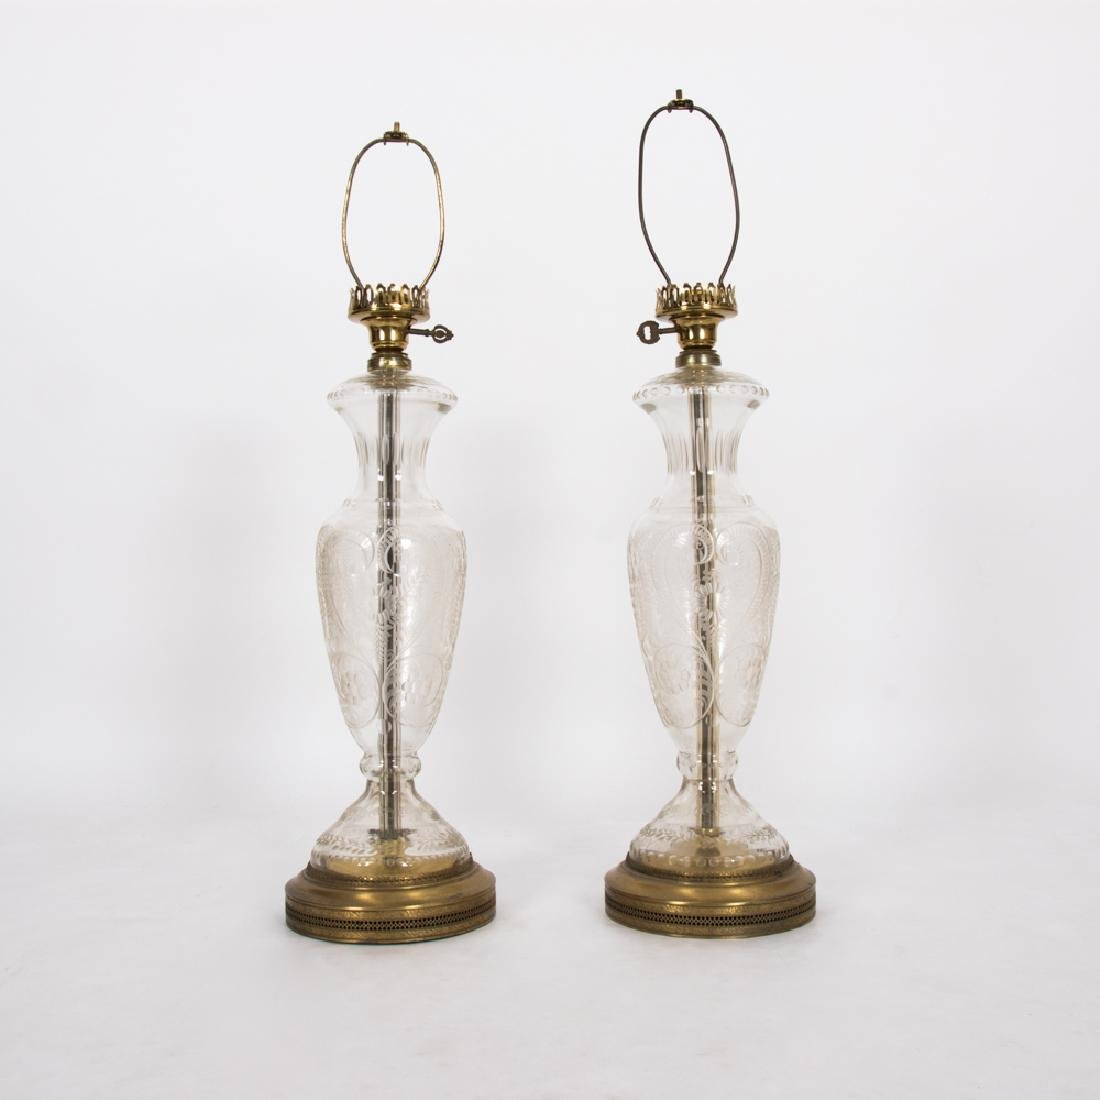 A Pair of Electrified Cut Glass Table Lamps, 20th